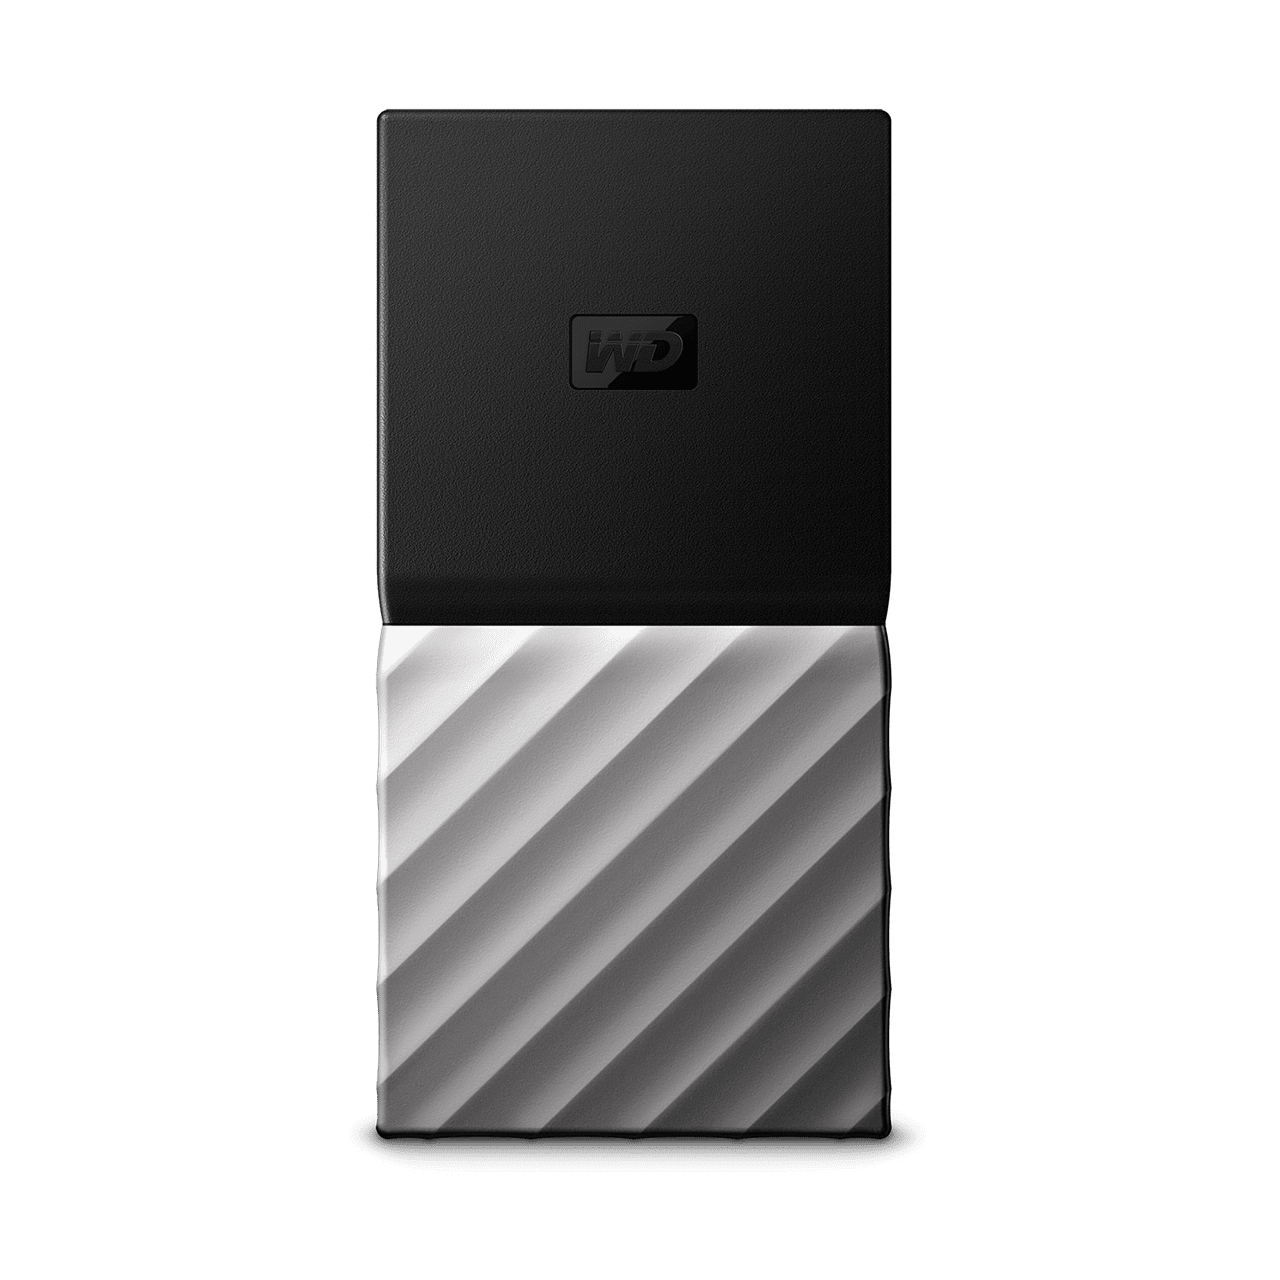 WD My Passport 2 TB Wired External Solid State Drive (Black, Grey) image 1